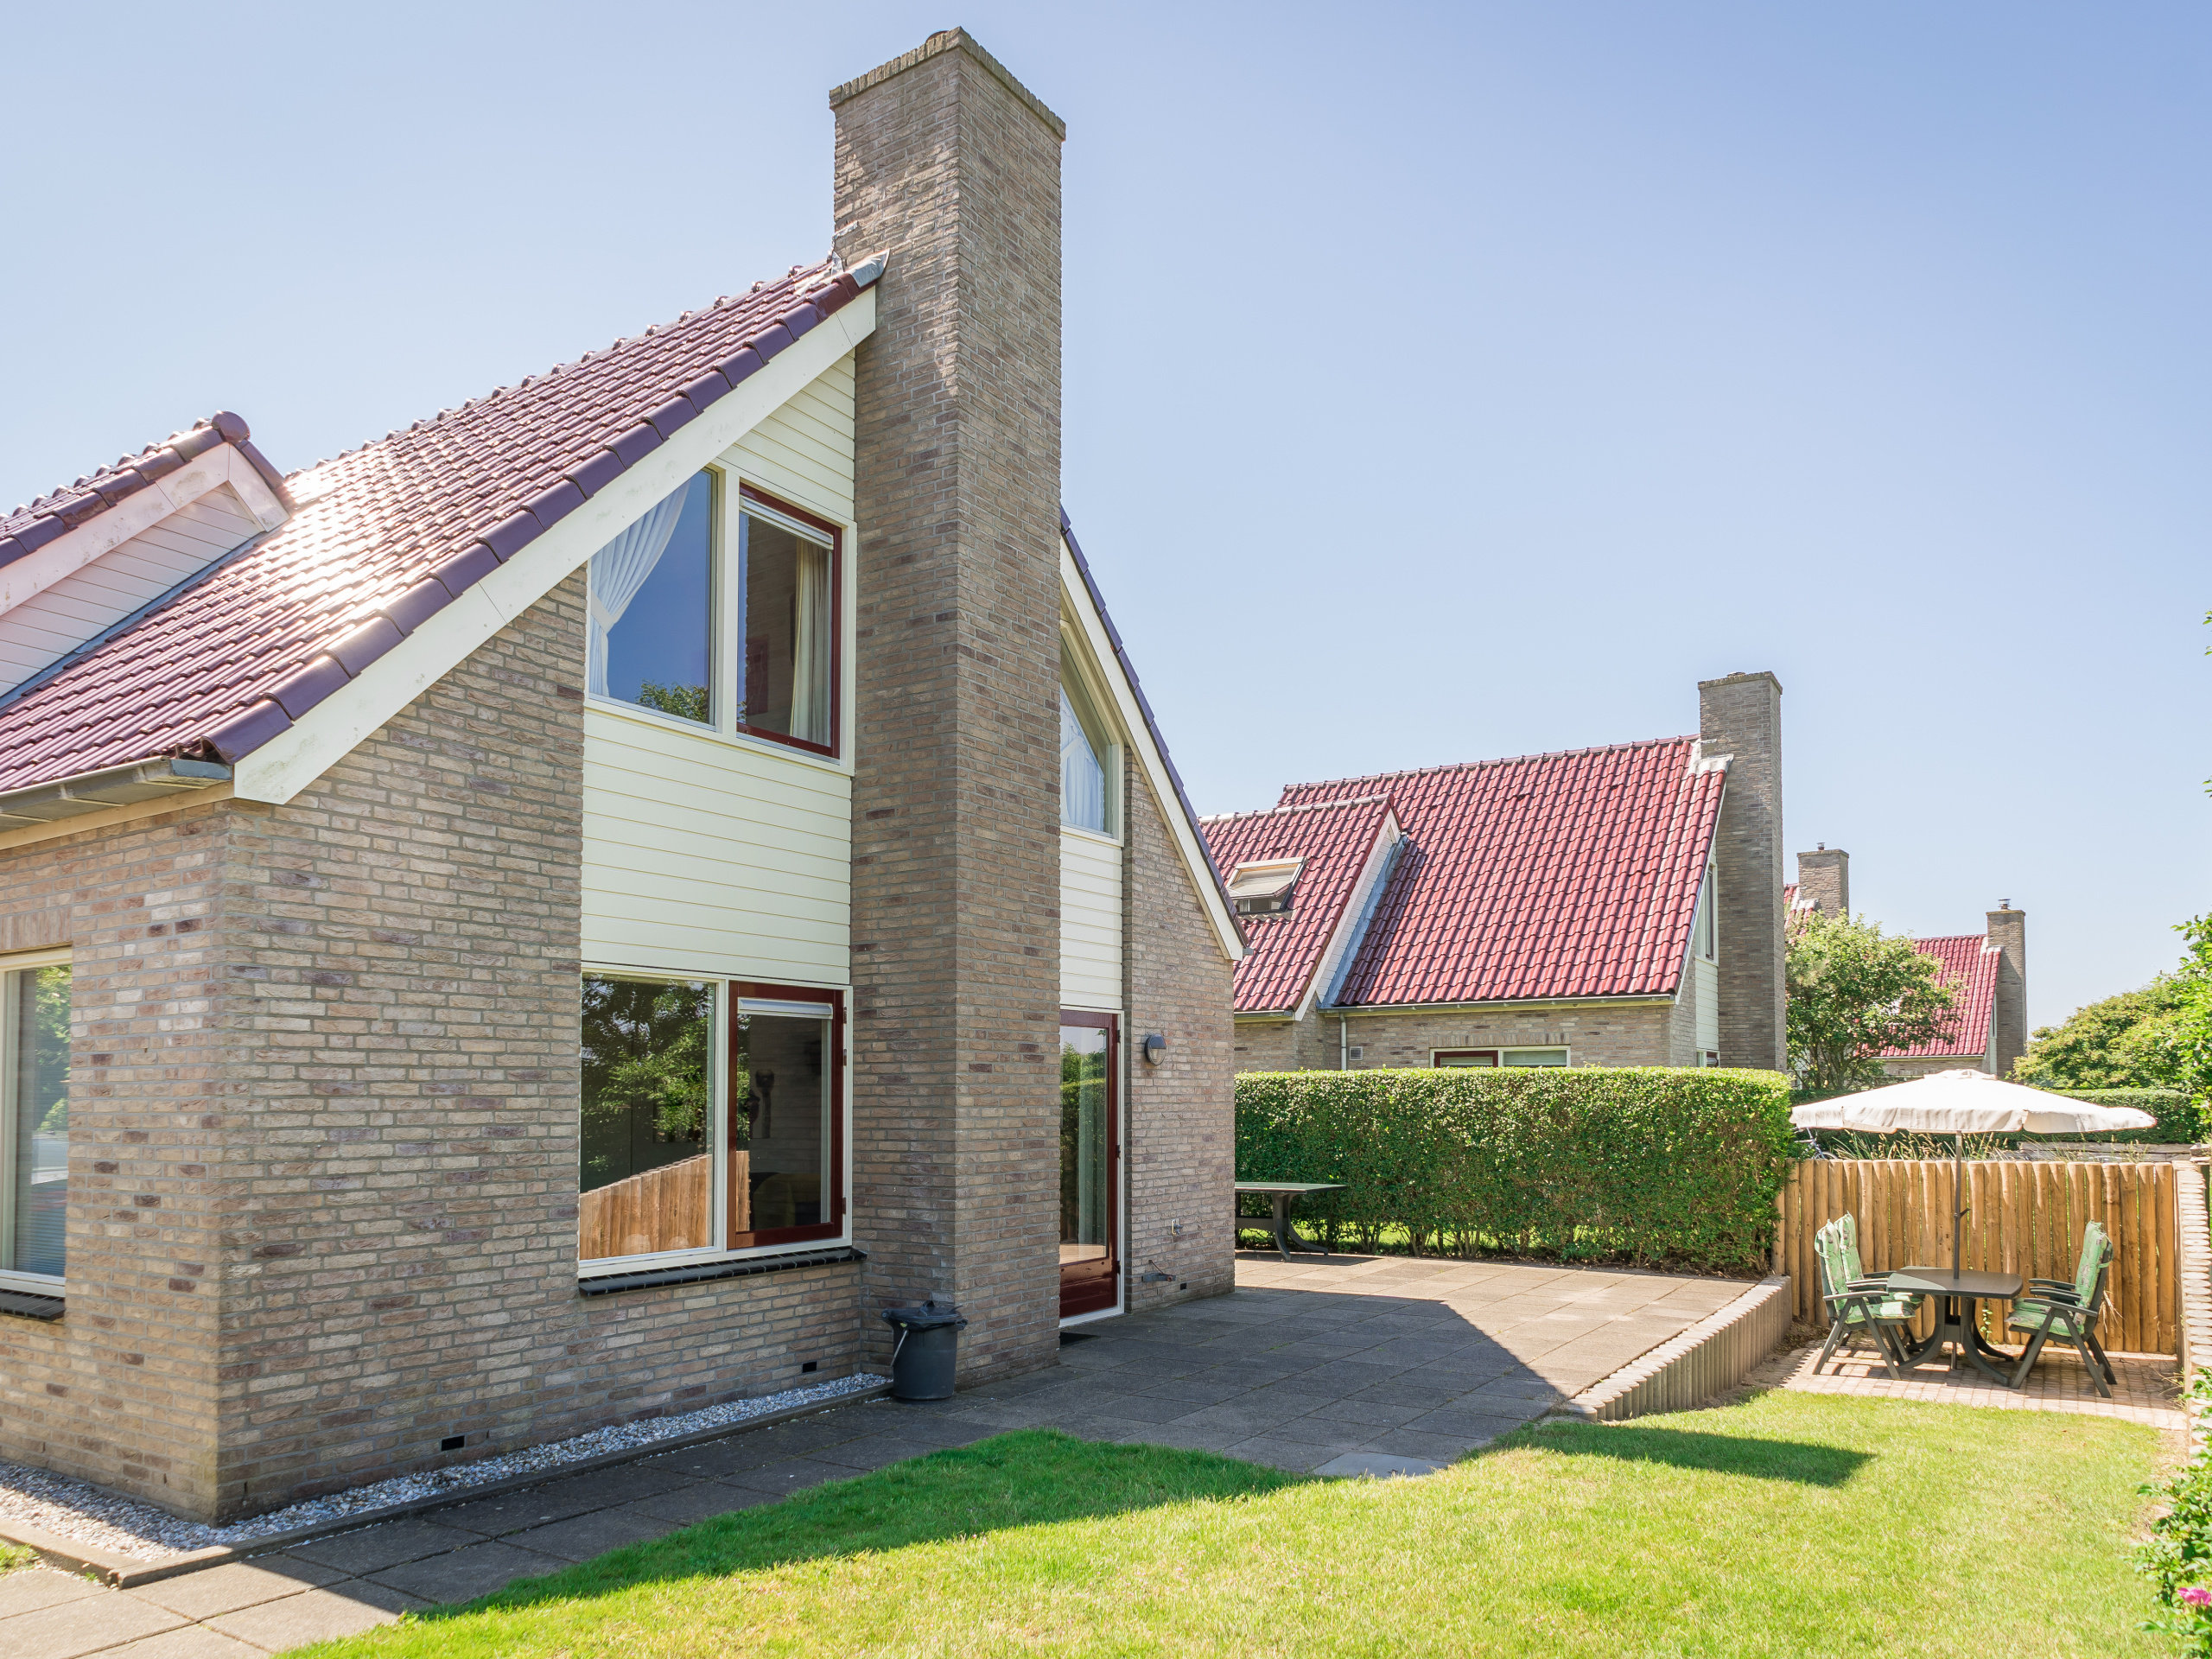 Luxury holiday home beautifully situated on the edge of the forest just outside De Koog